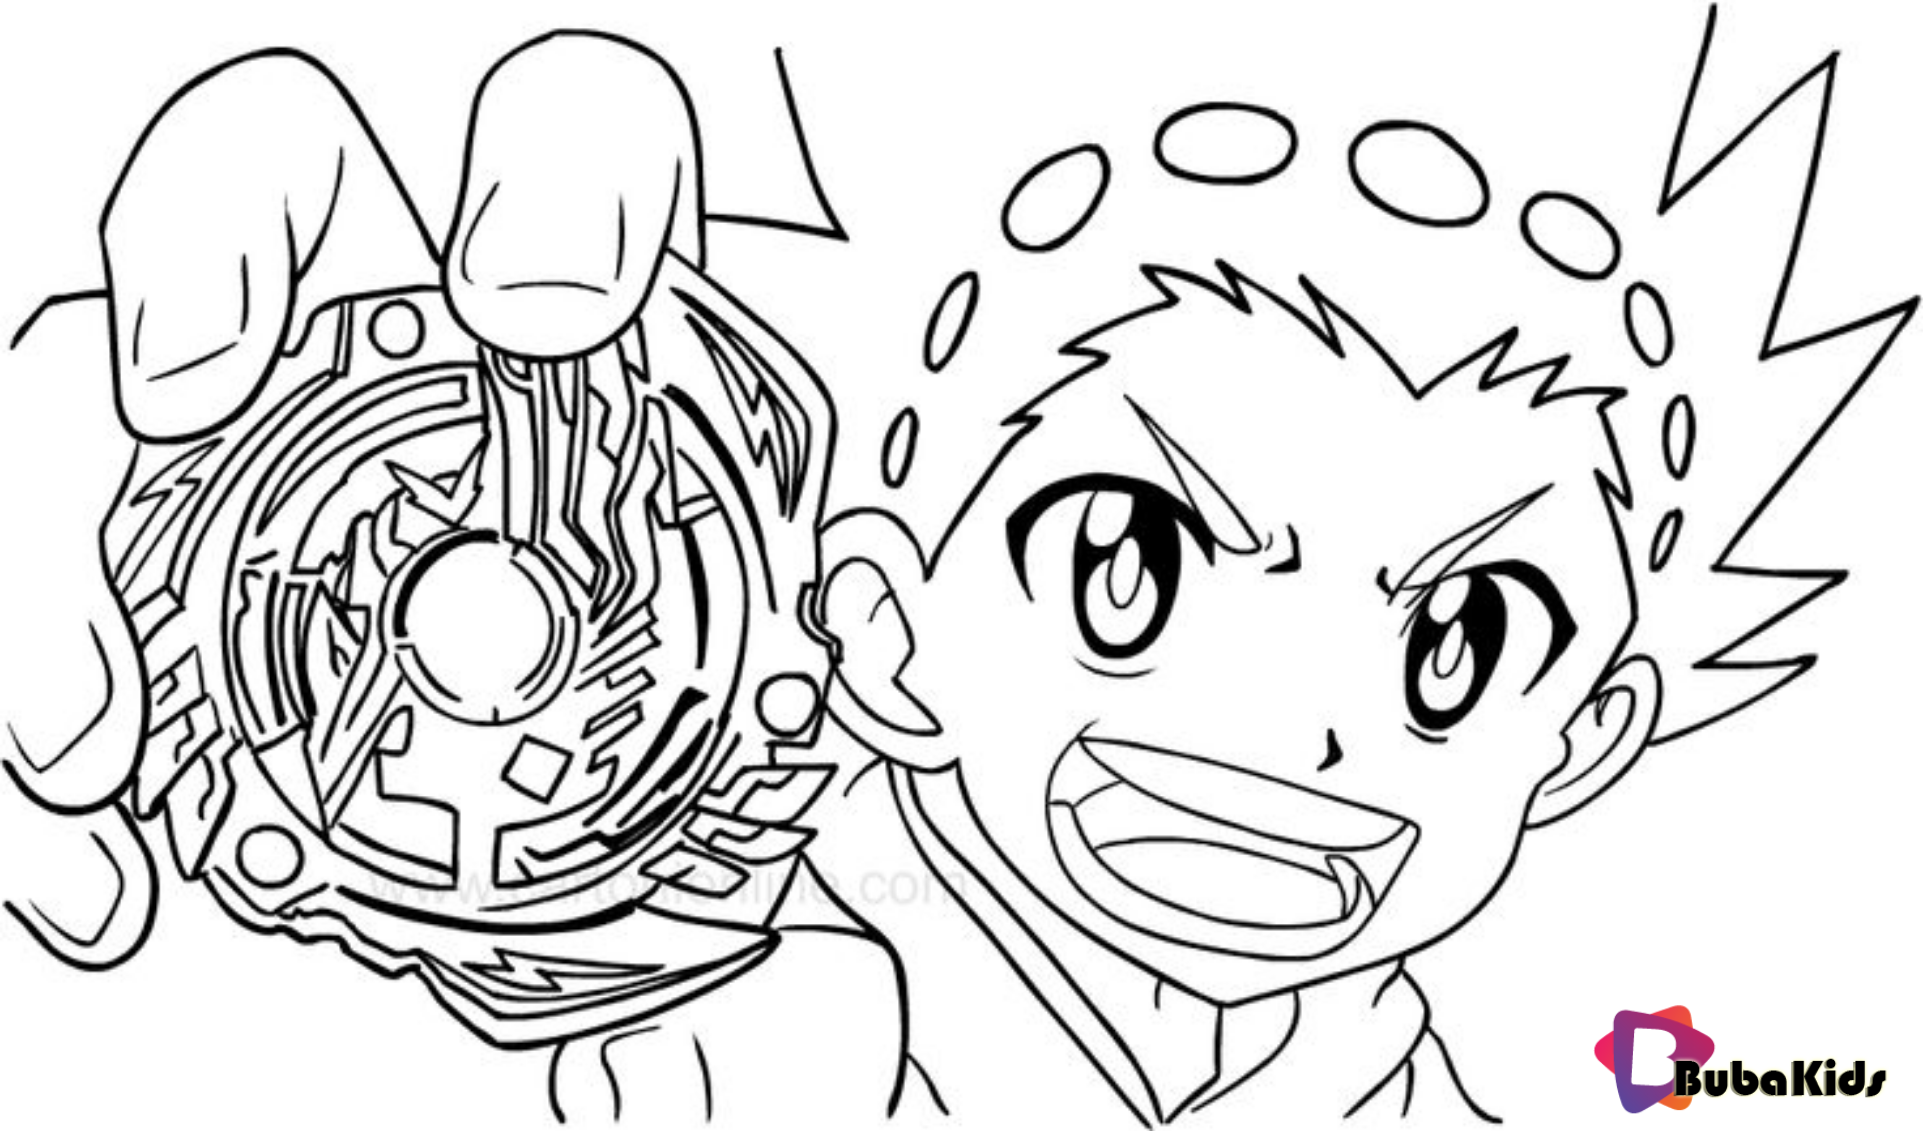 Beyblade Burst Coloring Page Beyblade Bubakids Burst Coloring Pages Beyblade Bubakids Bu Coloring Pages Cartoon Coloring Pages Airplane Coloring Pages